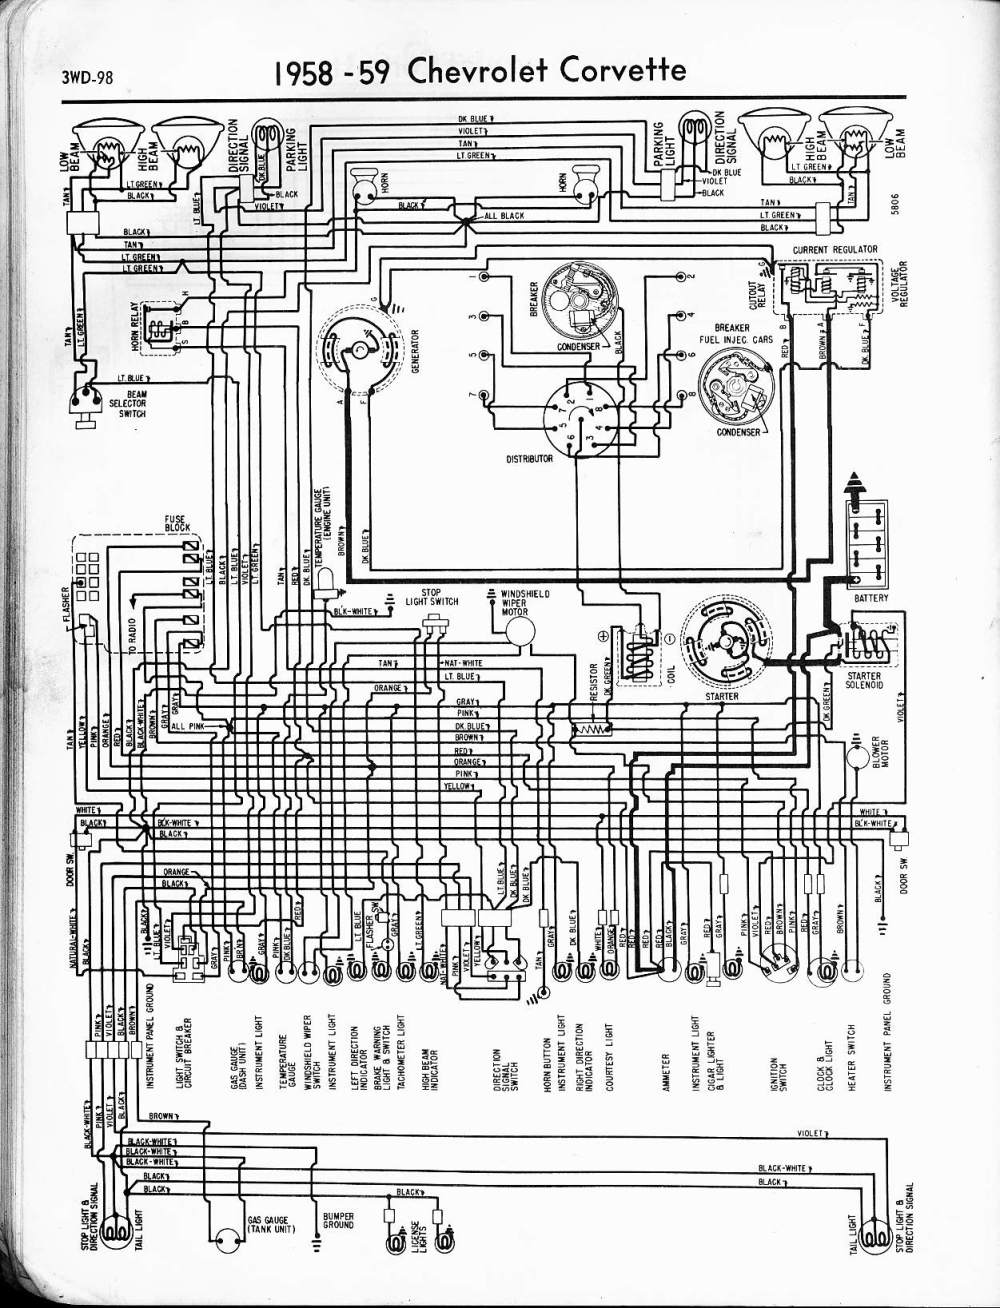 medium resolution of 1958 chevrolet steering column wiring wiring diagrams wni 1958 chevrolet steering column wiring